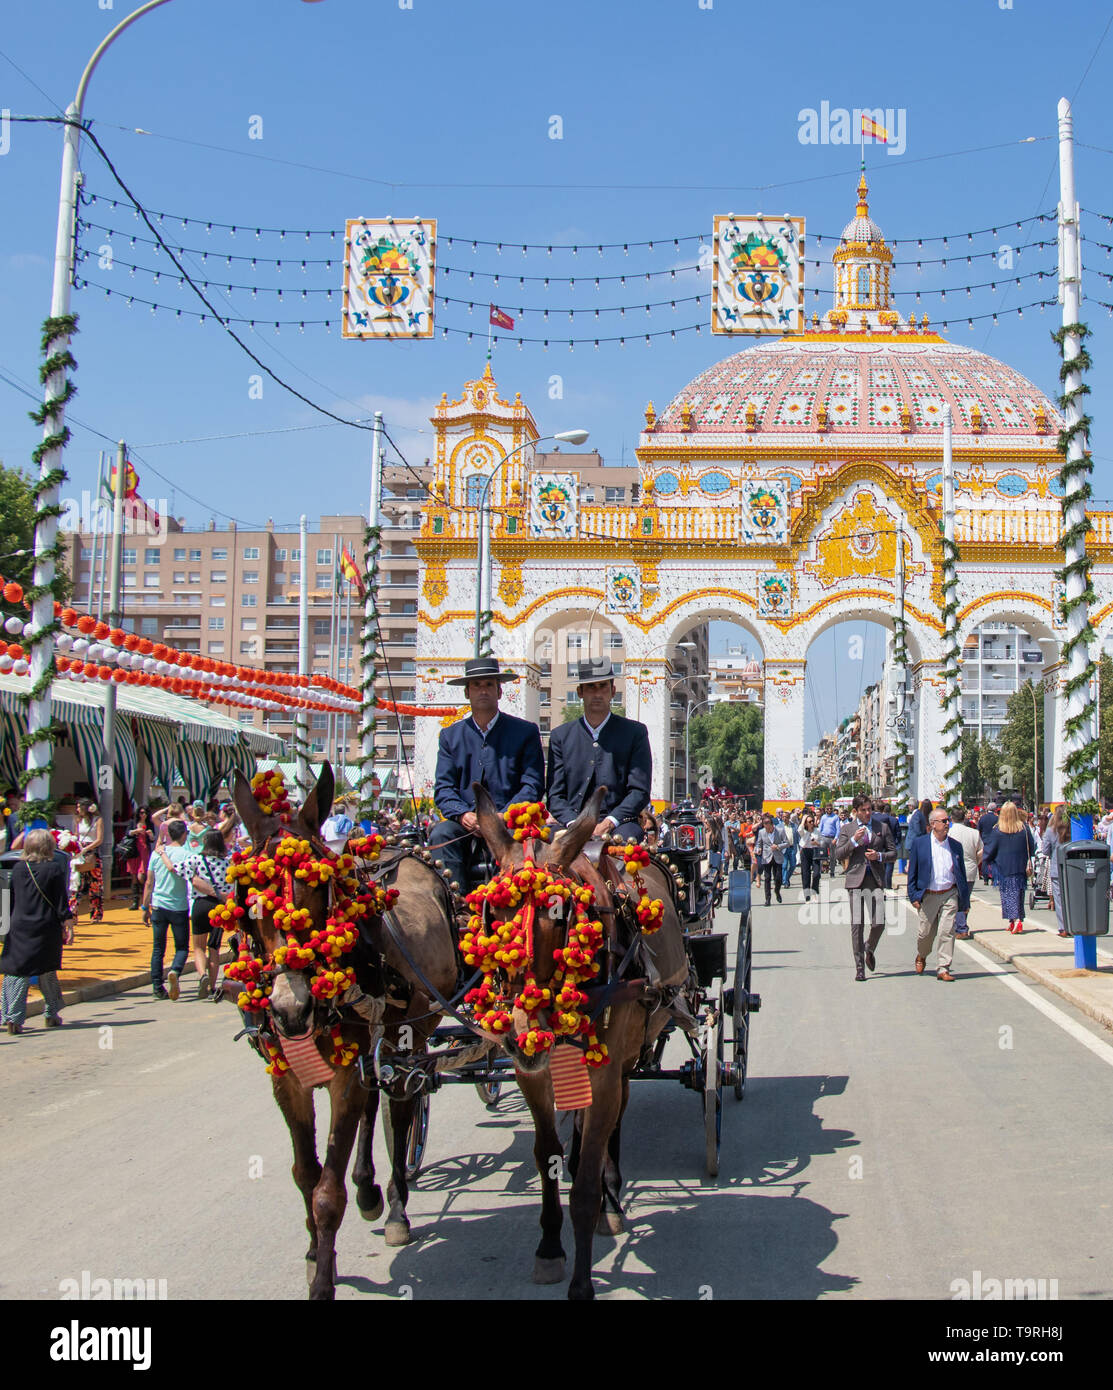 Seville, Spain - May 5, 2019: Horse drawn carriage during the April Fair of Seville on May, 5, 2019 in Seville, Spain - Stock Image